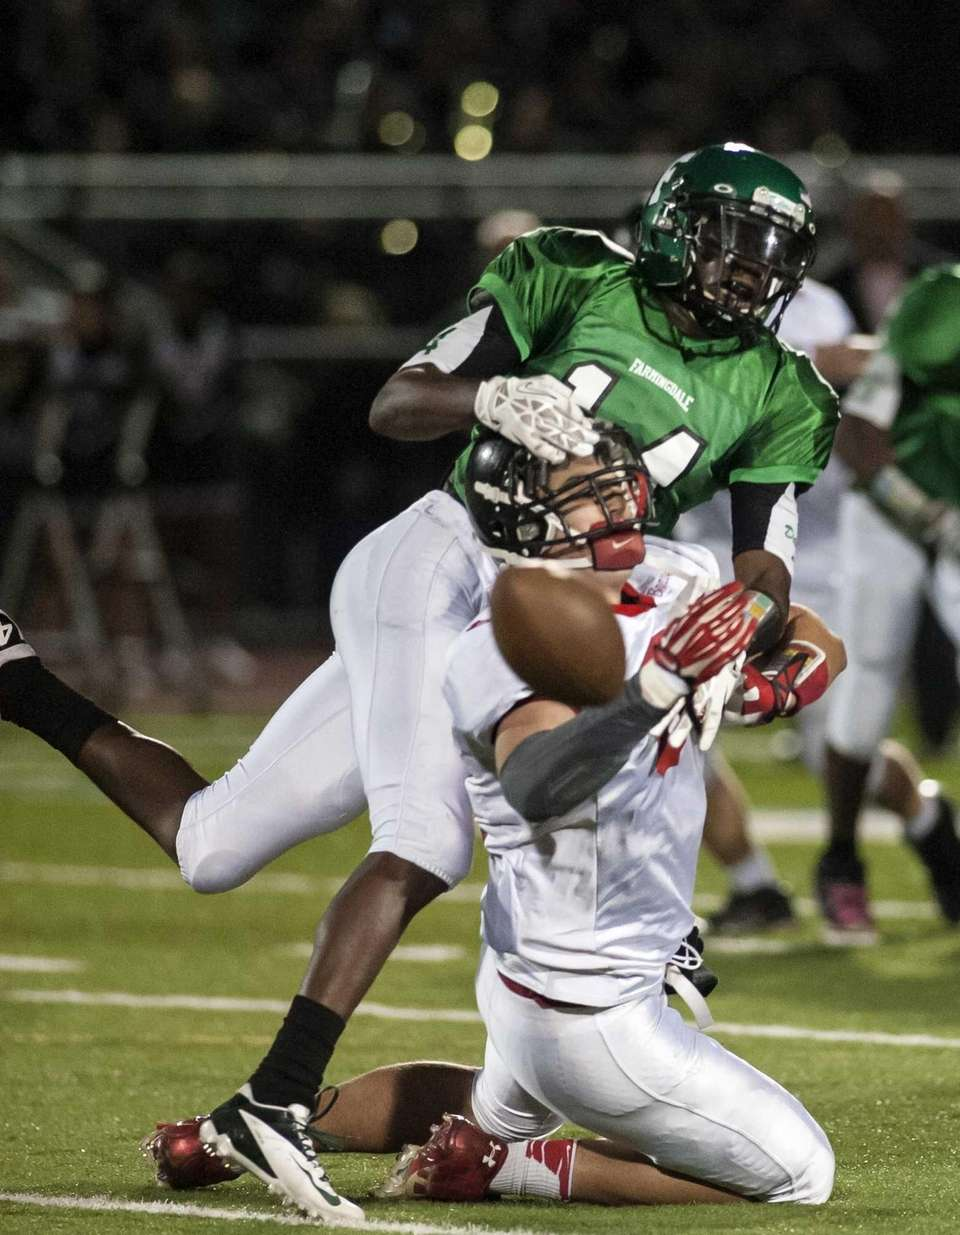 Farmingdale's Robert Jones, top, breaks up a pass